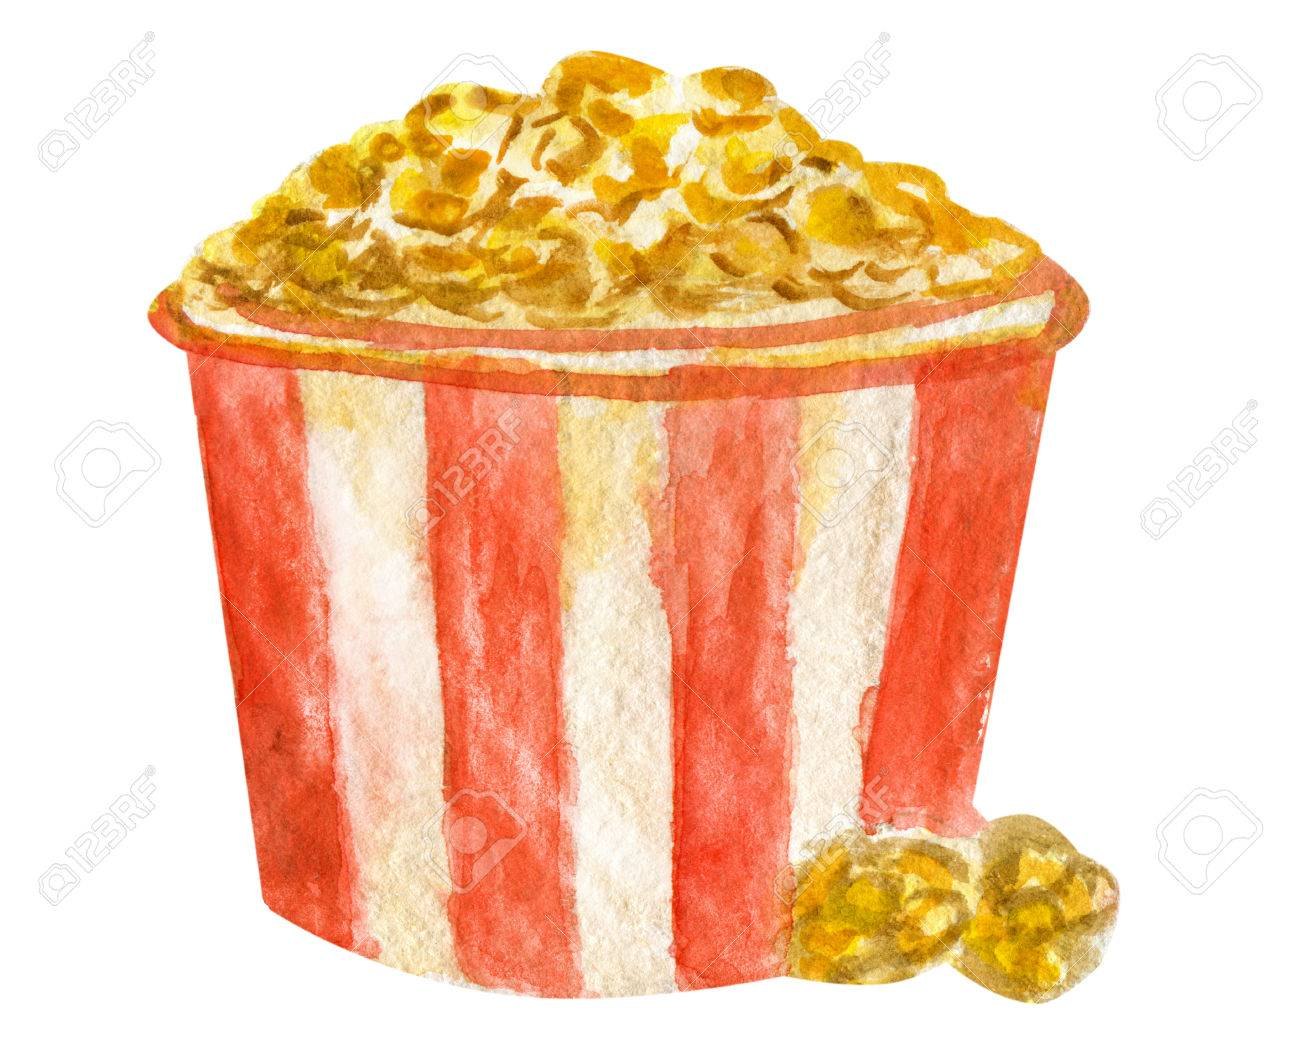 Watercolor Golden Popcorn In Striped Bucket On White Background 1300x1056